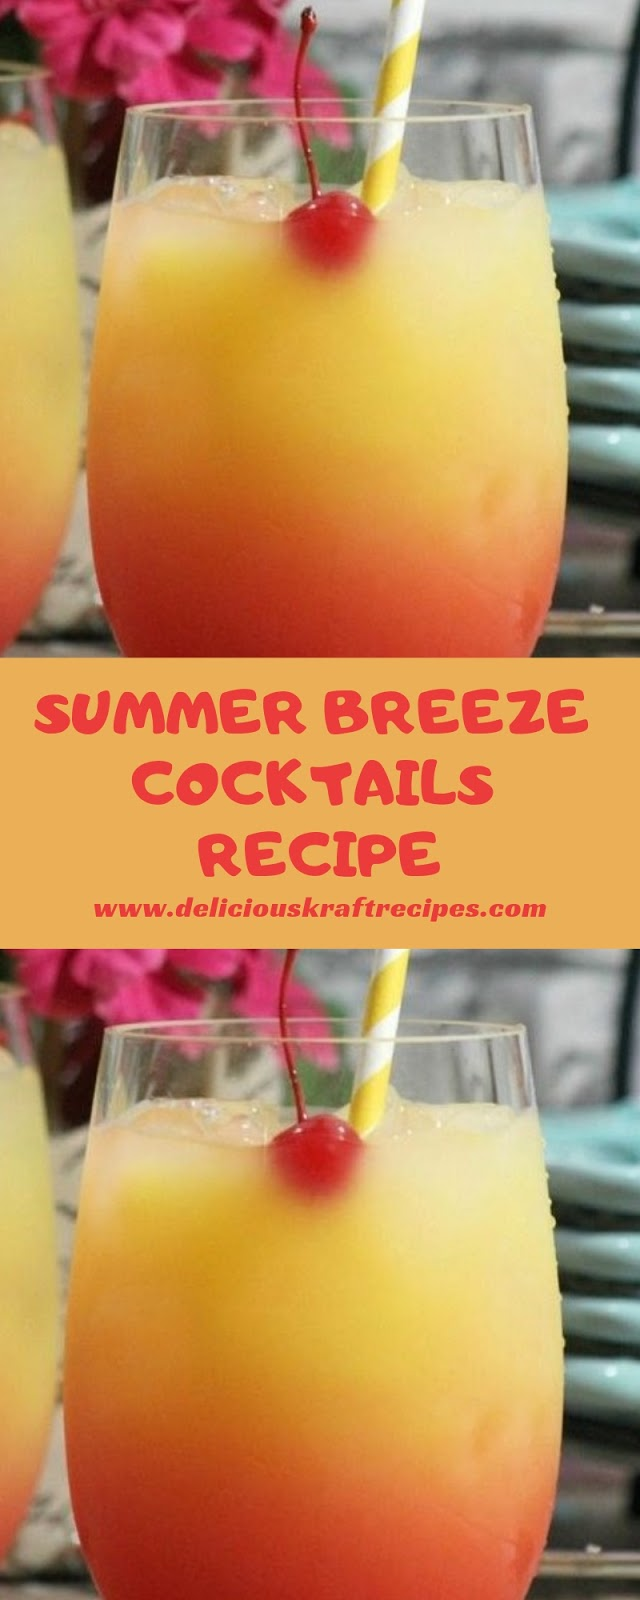 SUMMER BREEZE COCKTAILS RECIPE